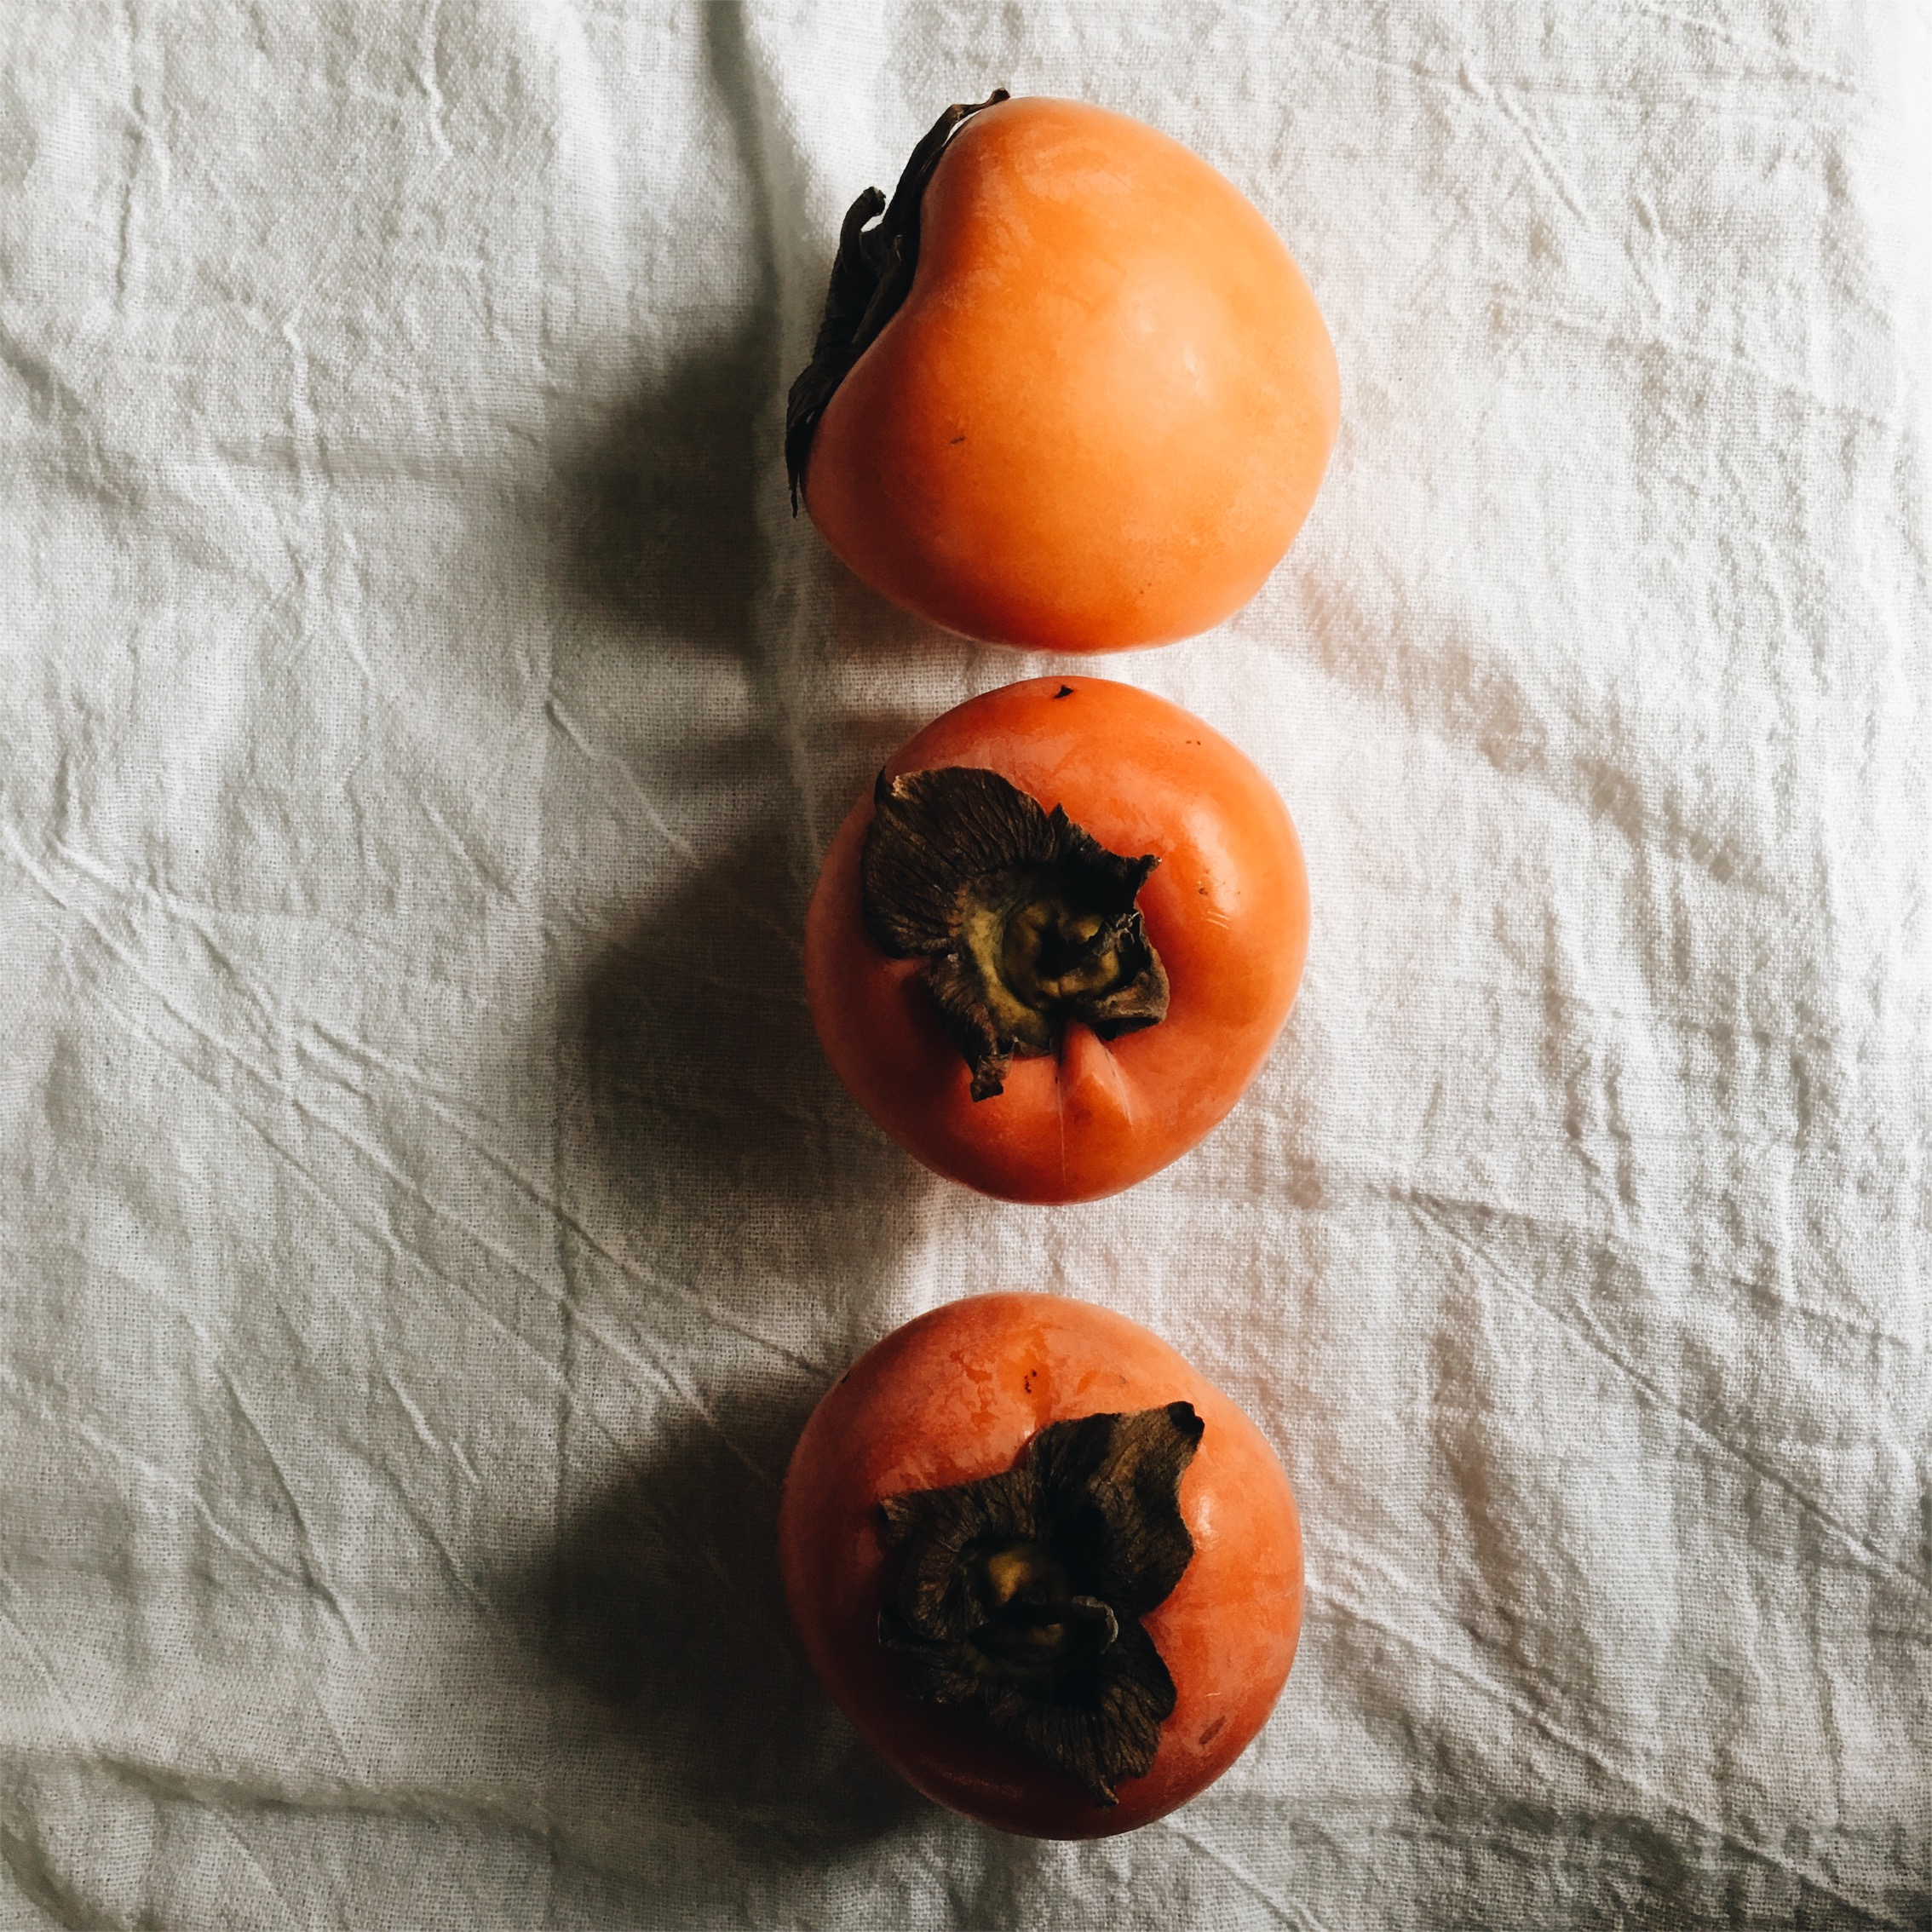 These chocolate persimmon are seasonally available Nov-Dec